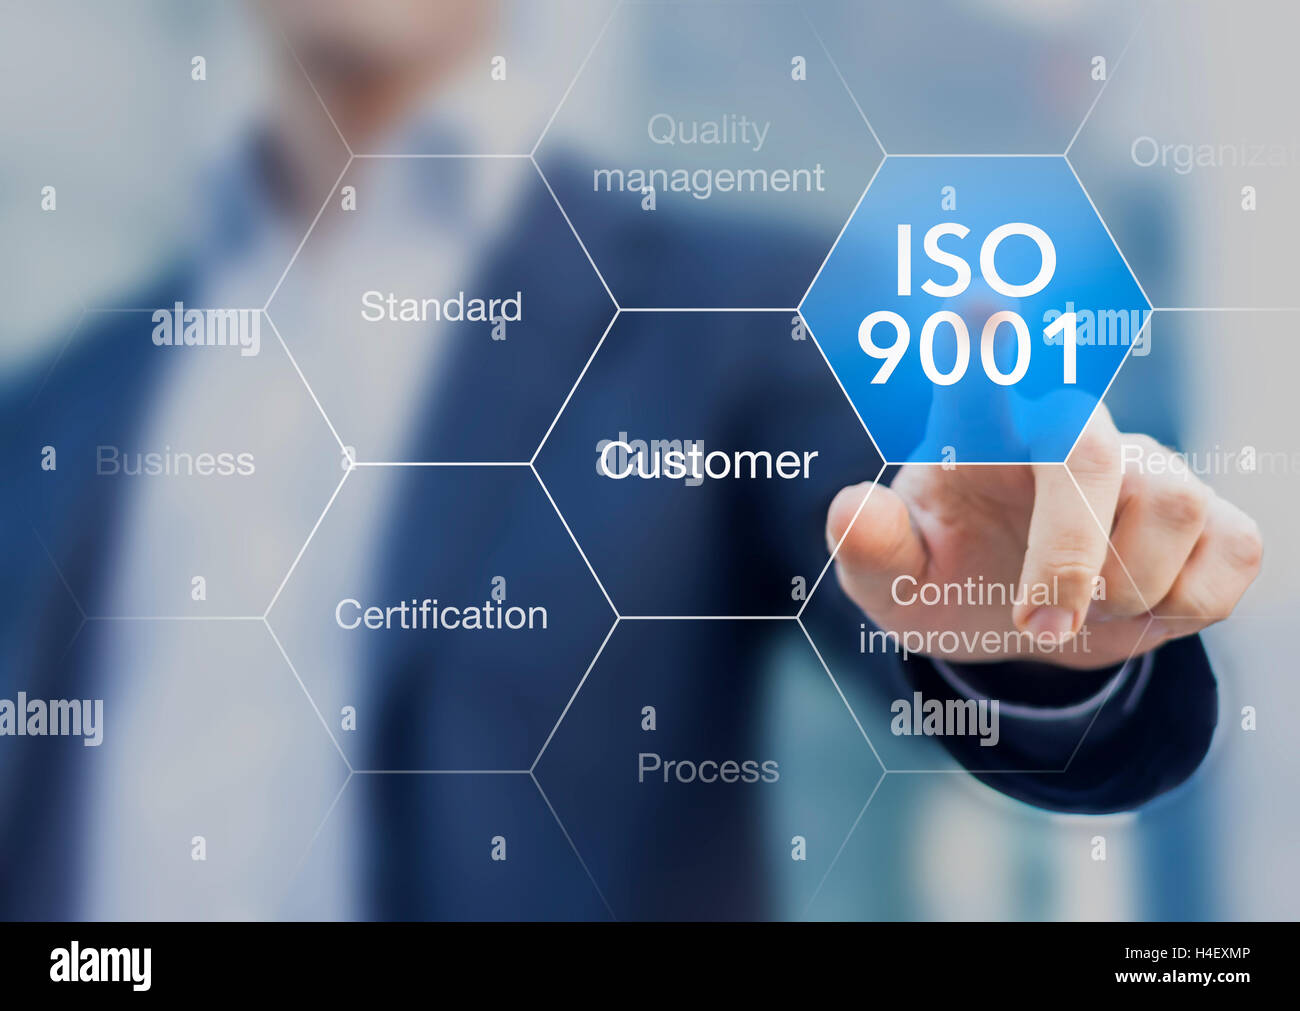 ISO 9001 standard for quality management of organizations with an auditor or manager in background - Stock Image